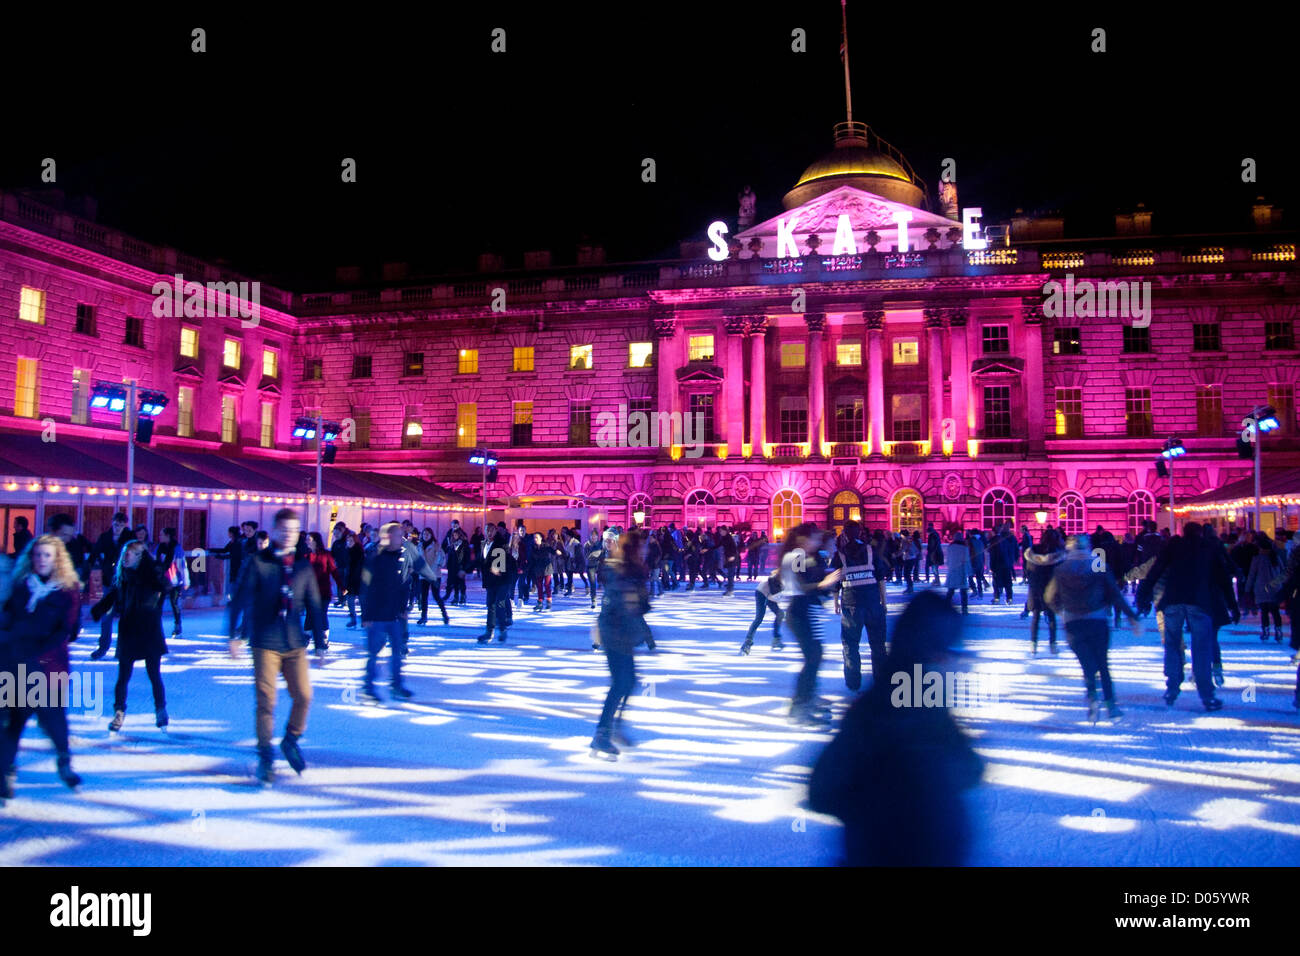 Christmas Ice Skating London.Somerset House Christmas Ice Rink With People Skating At